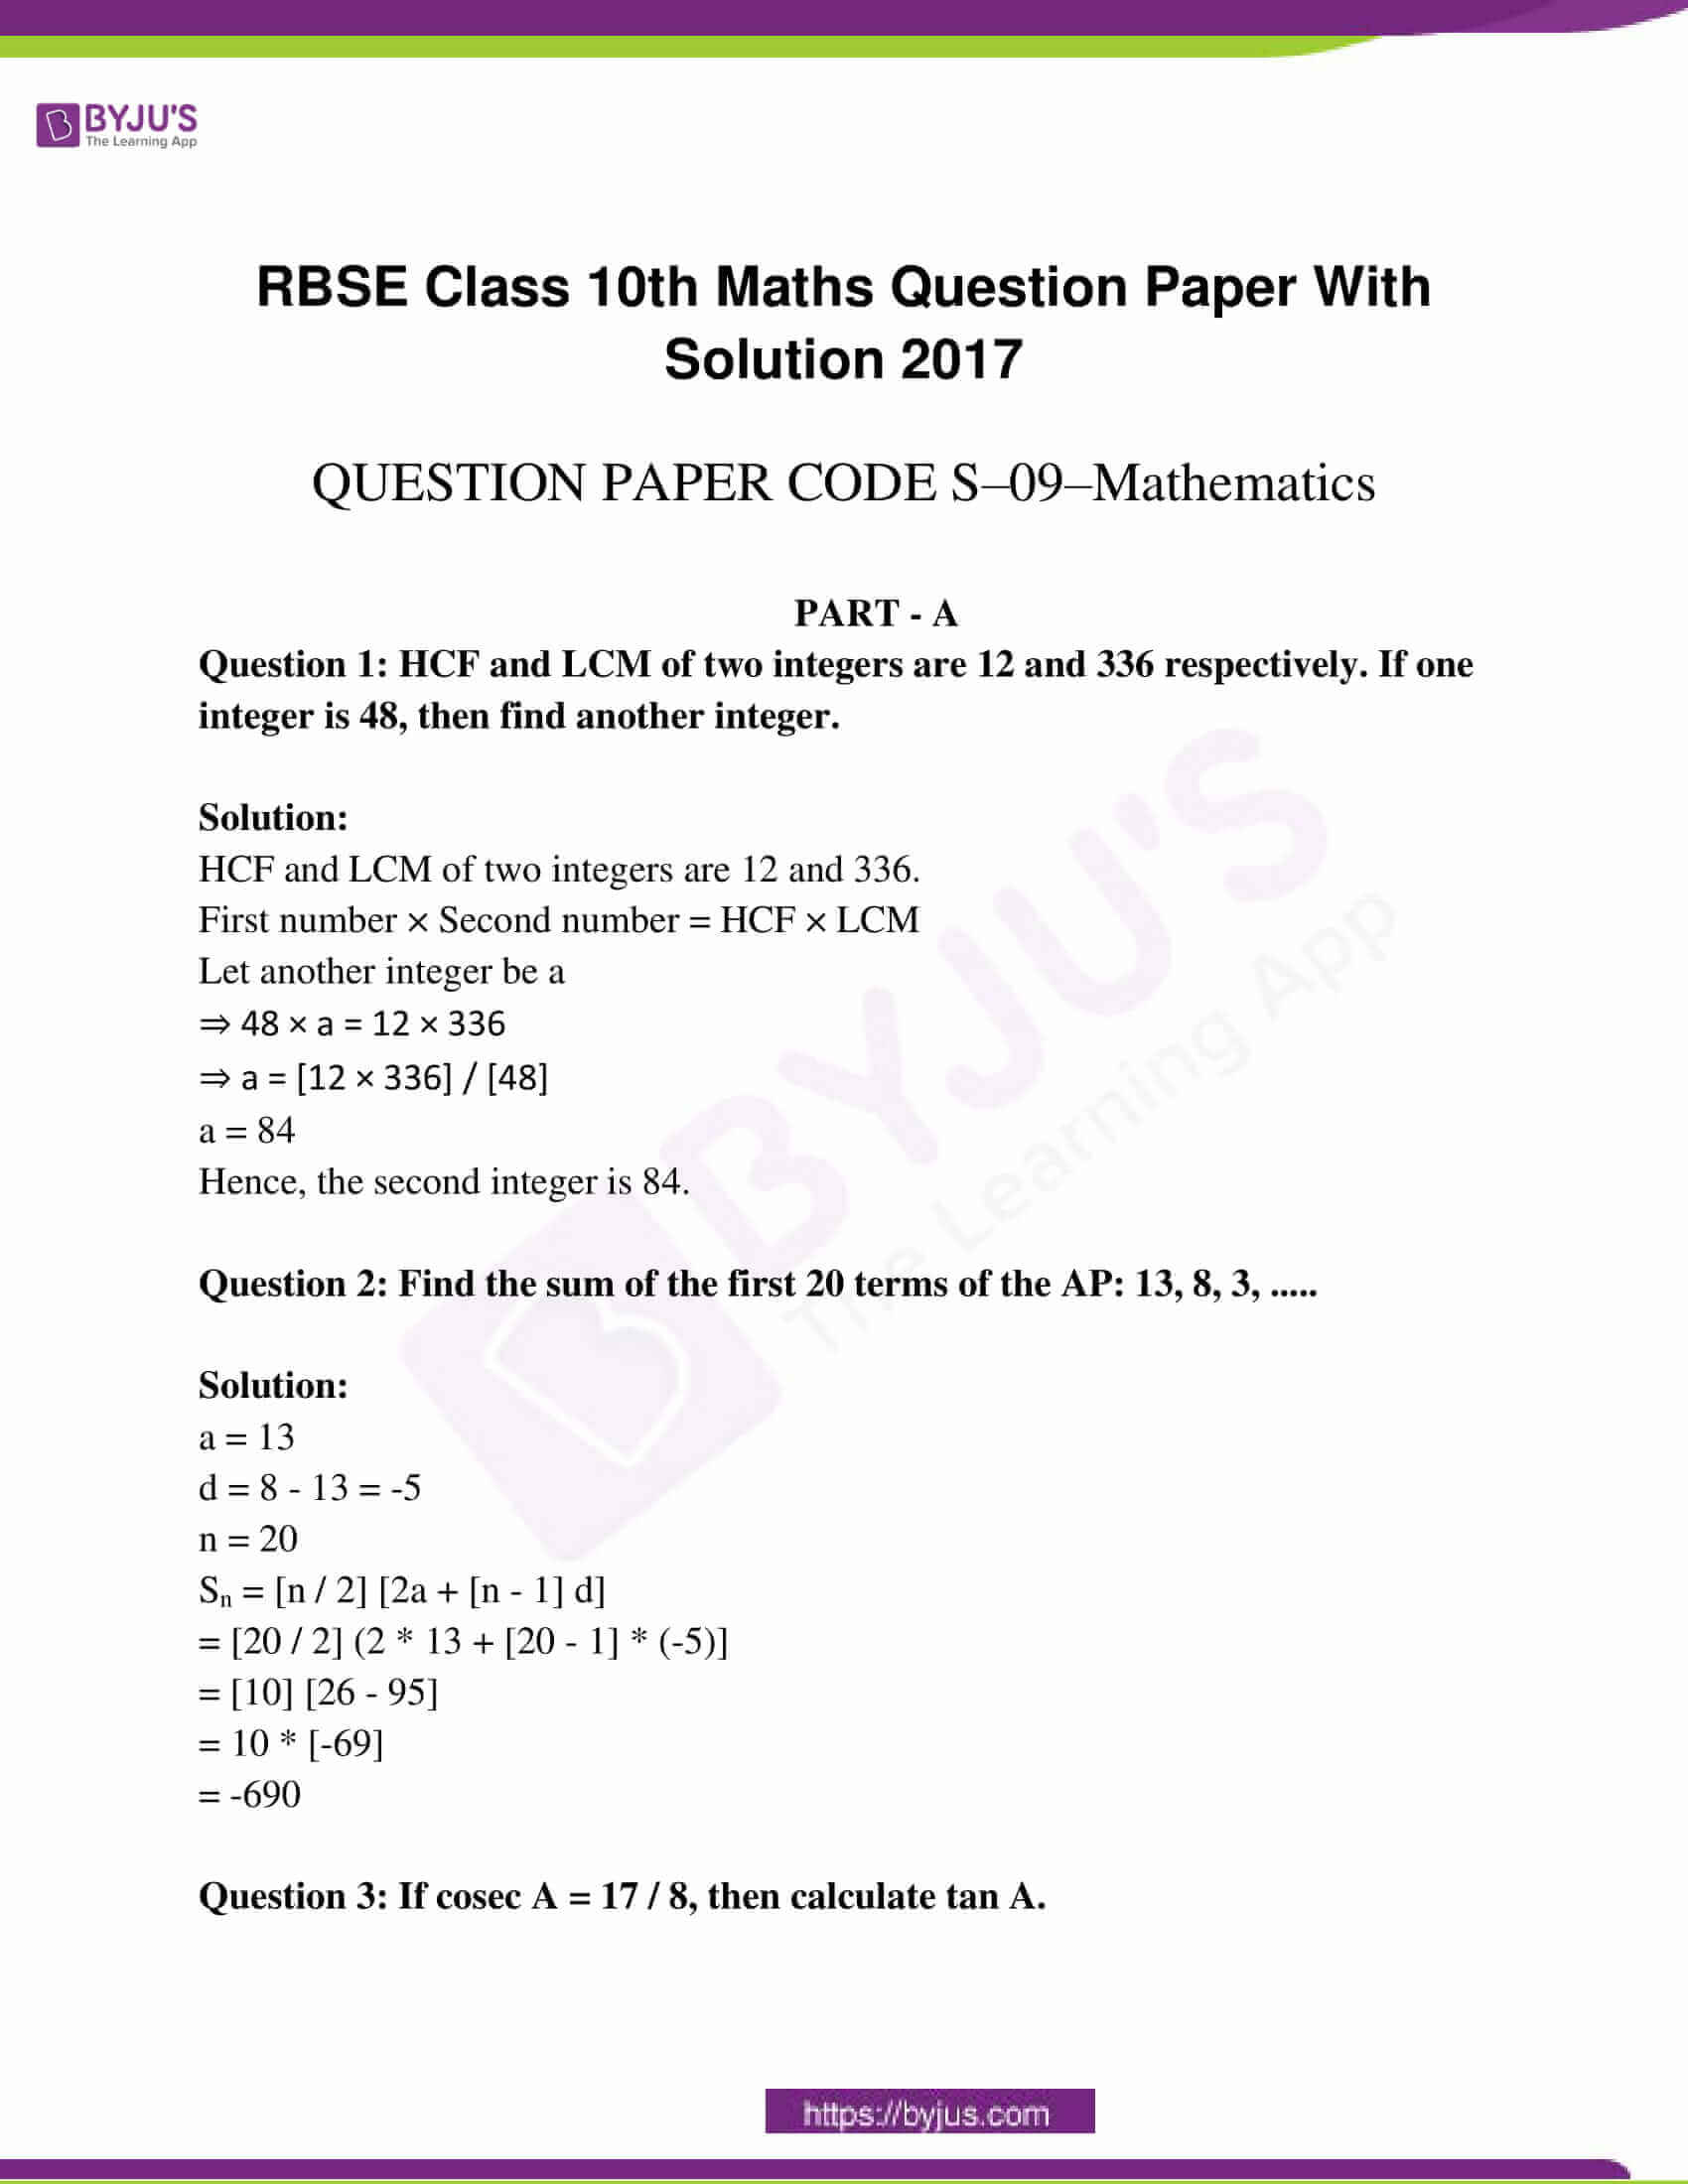 rajasthan board class 10 examination question paper sol march 2017 01